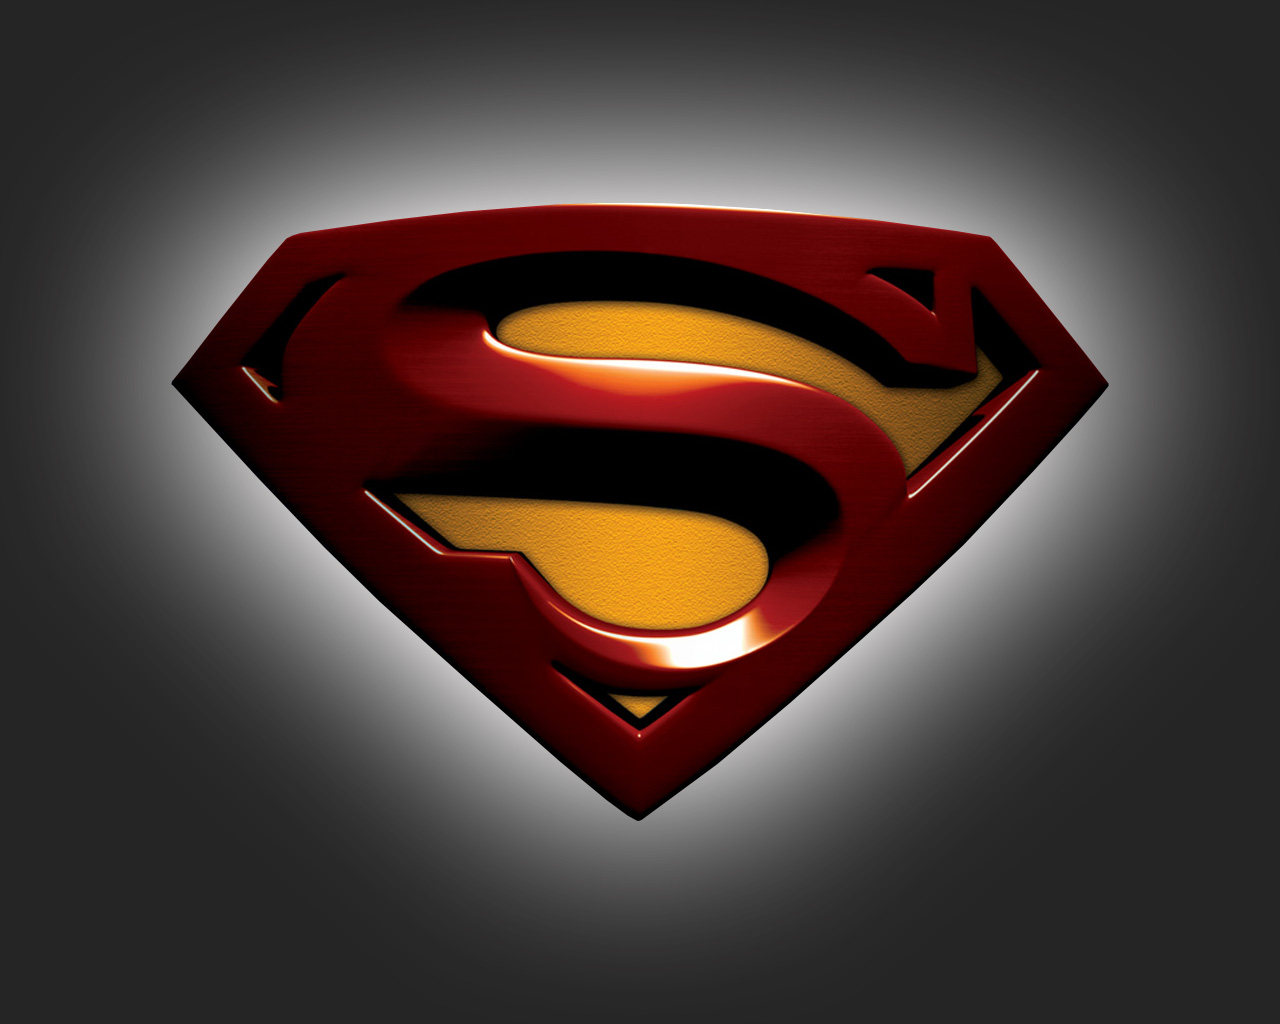 Black And Red Superman Logo Wallpaper The Red Superman Logo is Put